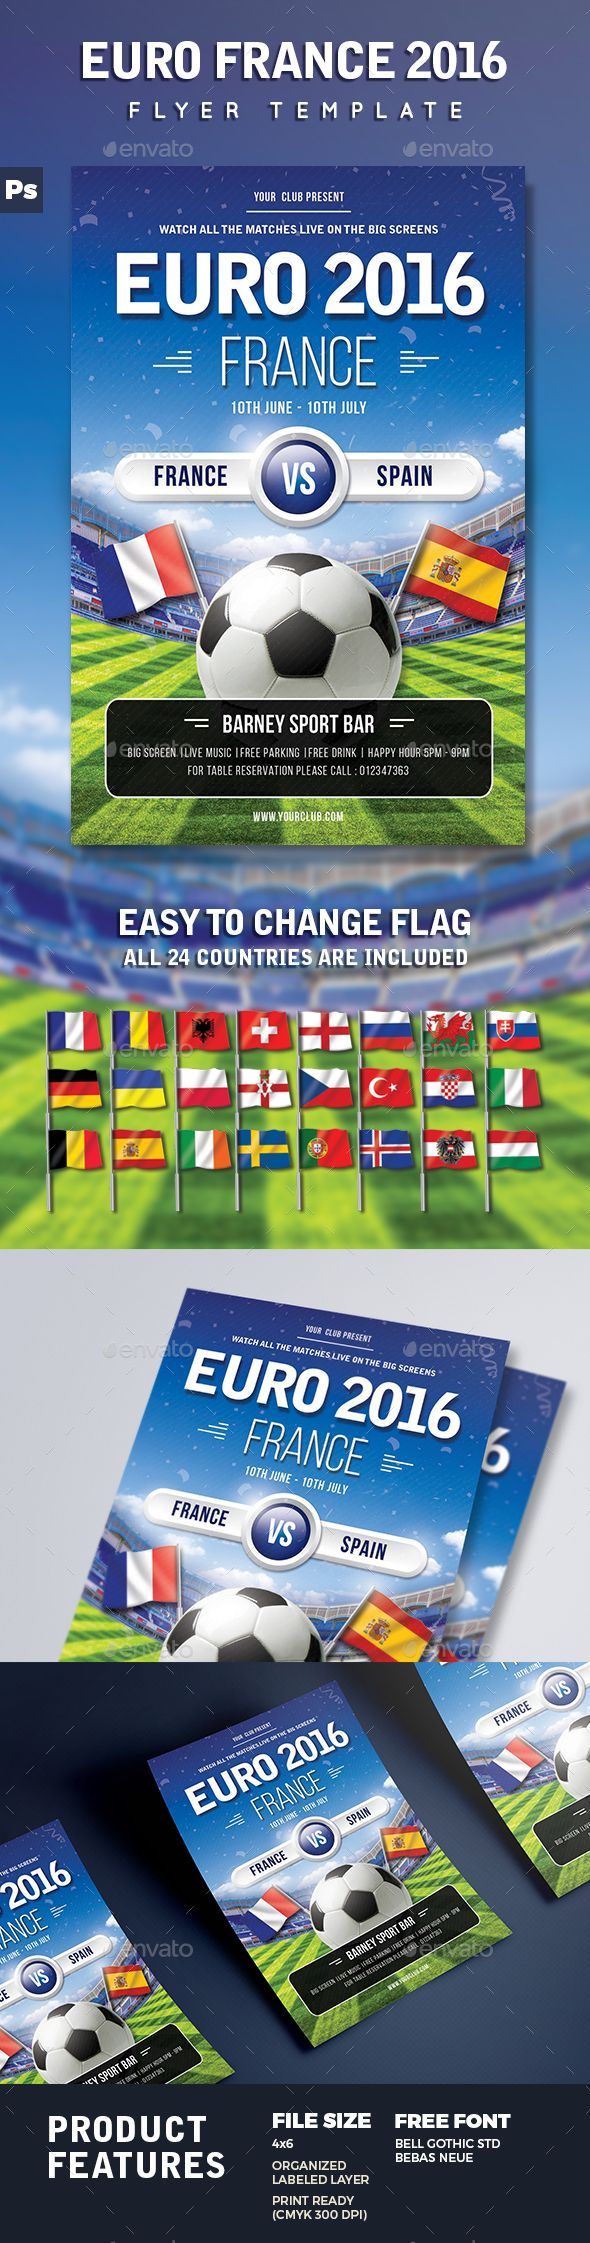 Football Euro France 2016 Flyer This Flyer is perfect for advertising football/soccer tournaments, matches, events and everything related to it or for any other sport party in your bar/pub/club. FEATURES4X6  bleed Well Organized Layer Print Ready CMYK 300 DPI